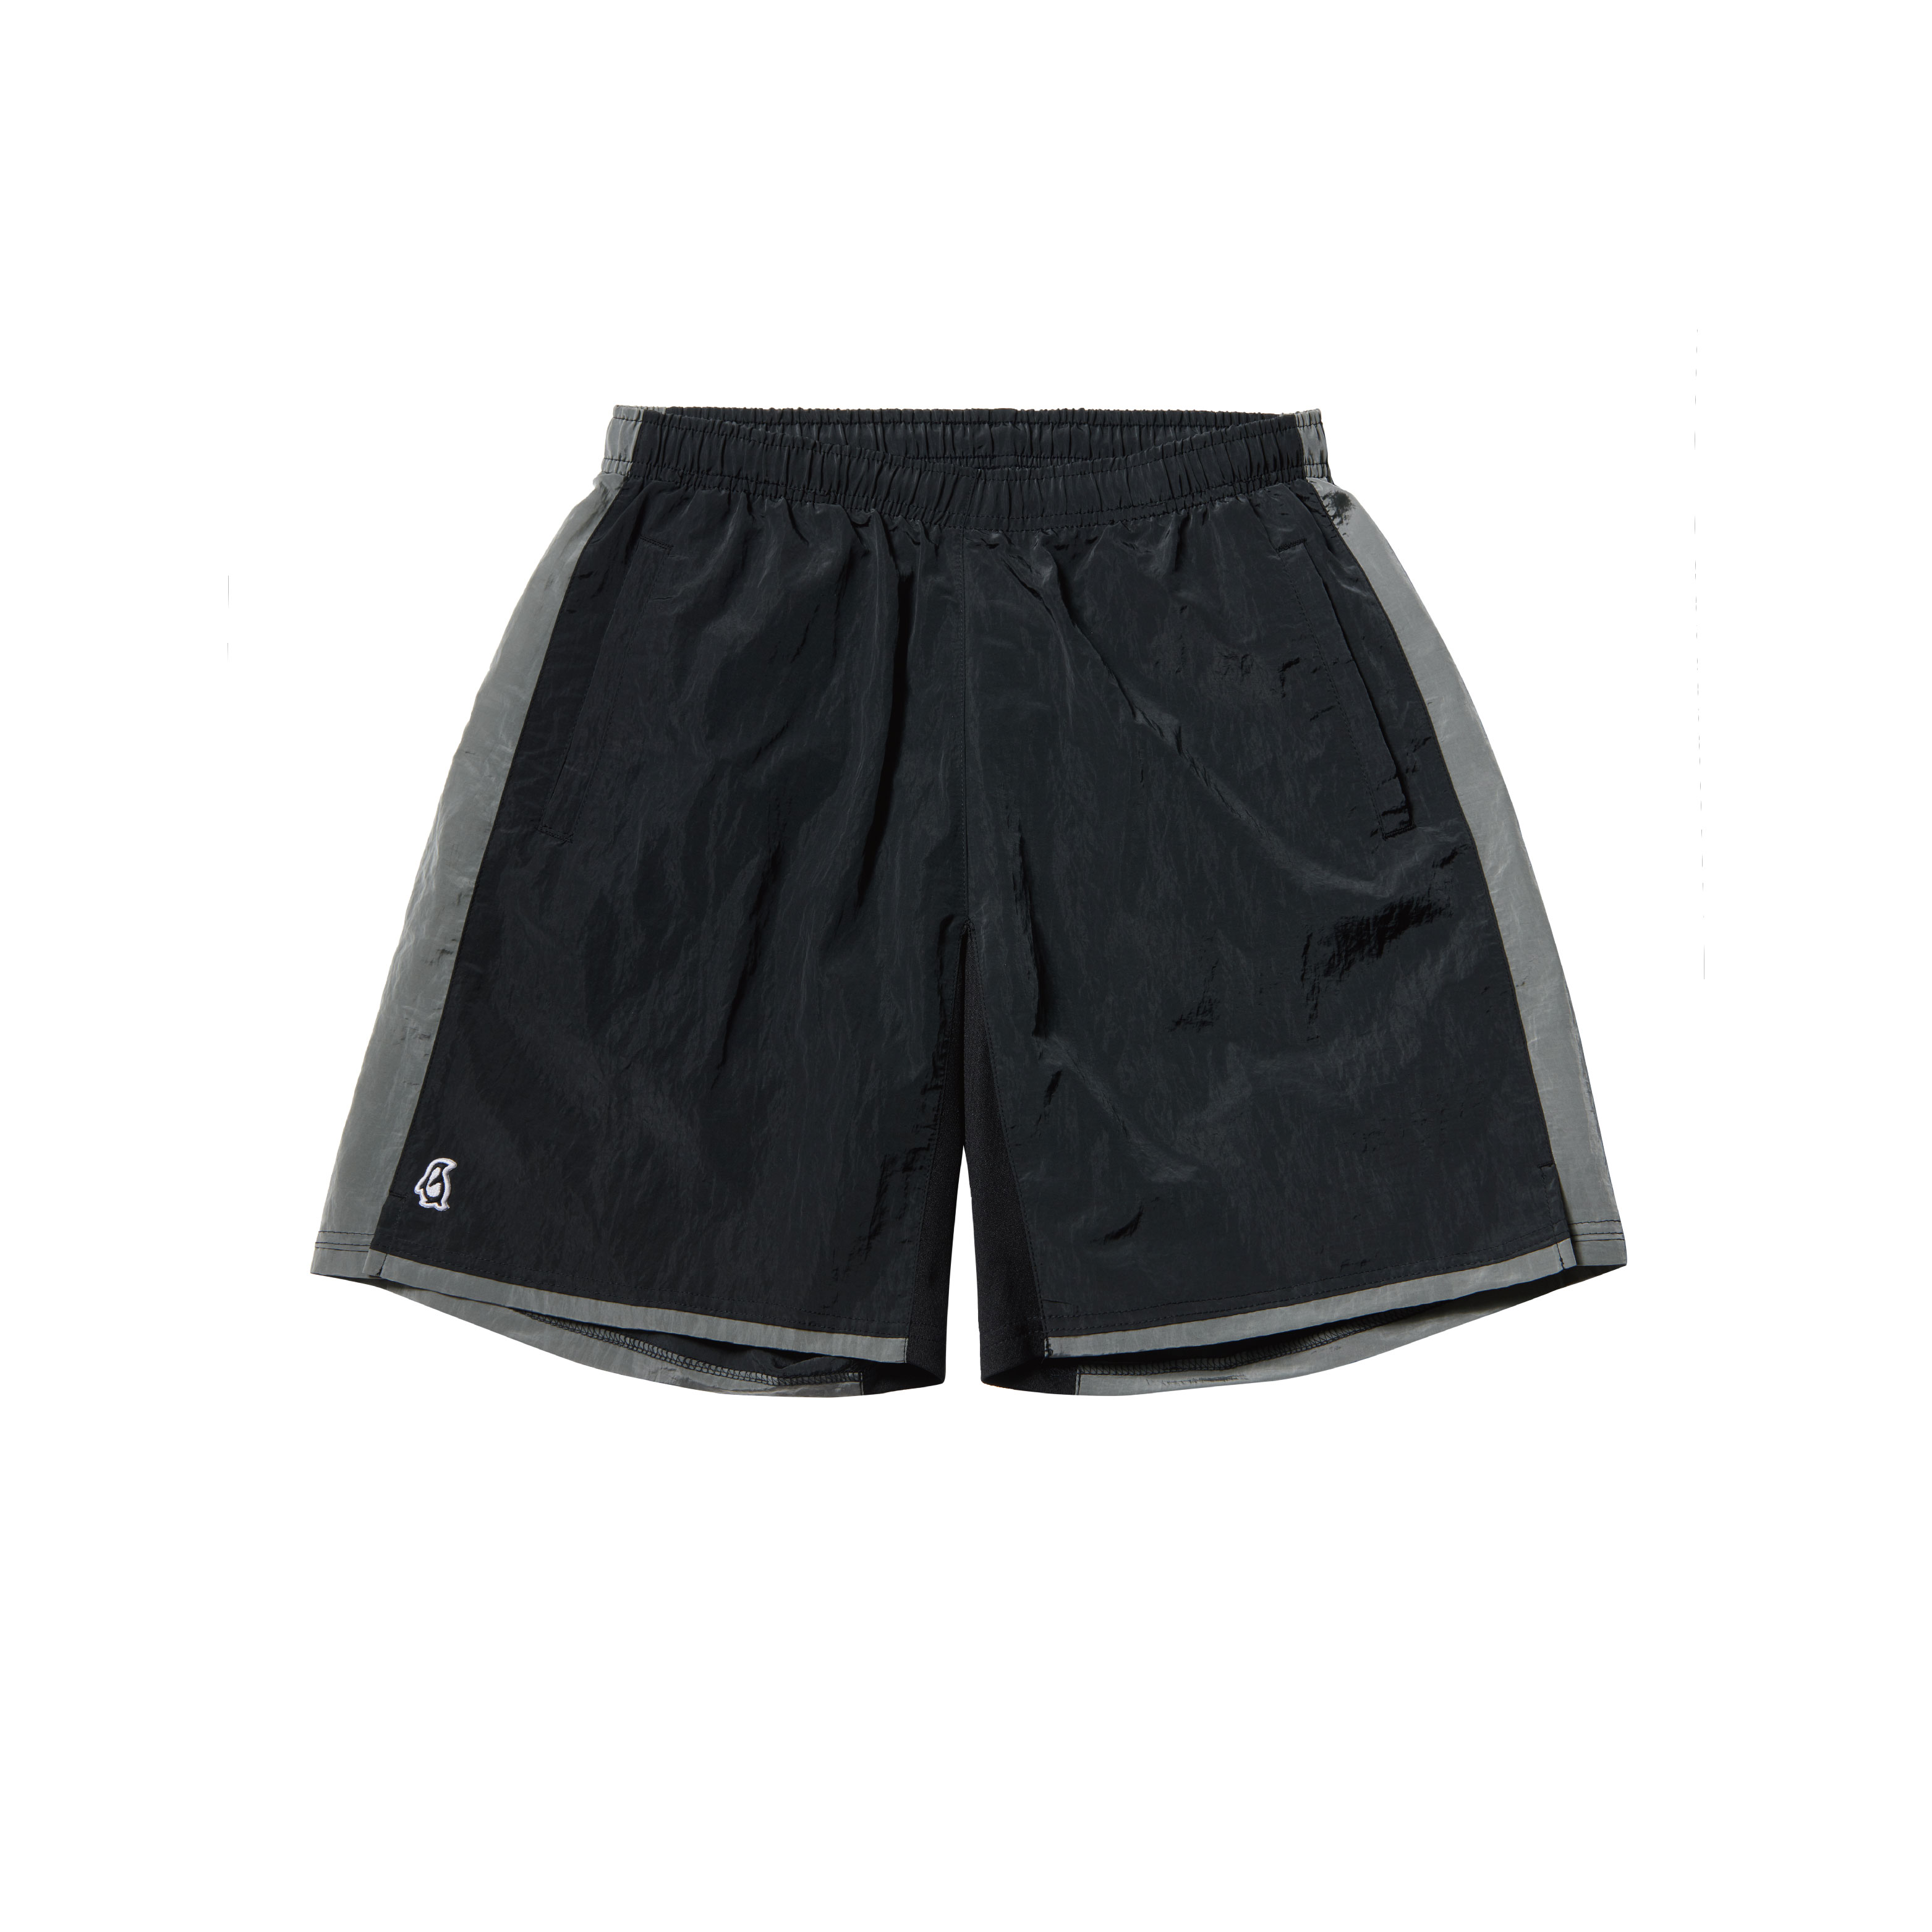 Paul Garments Dying Nylon Shorts Black